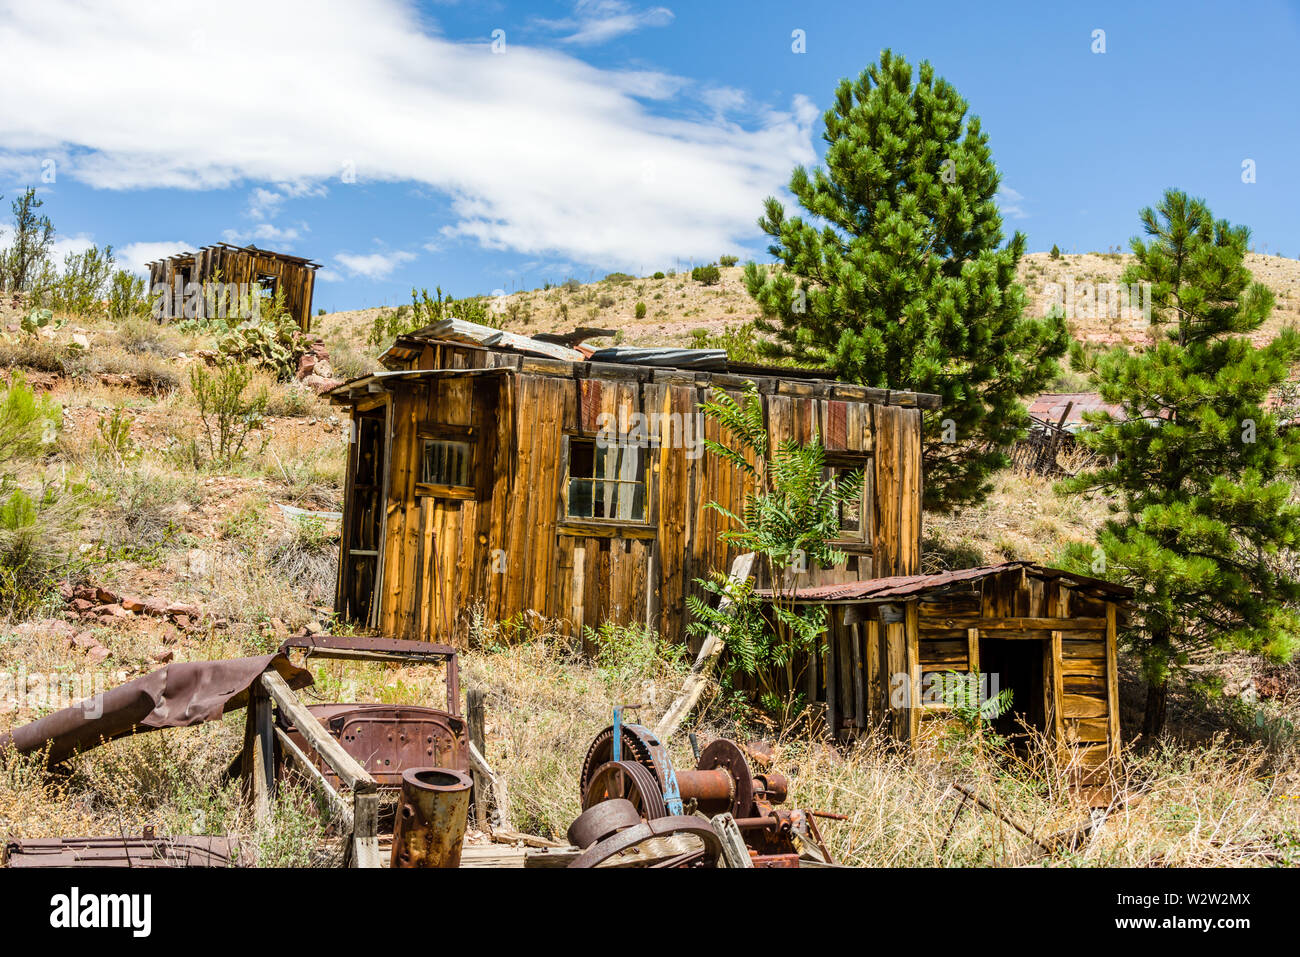 Jerome Ghost Town Shacks - Stock Image